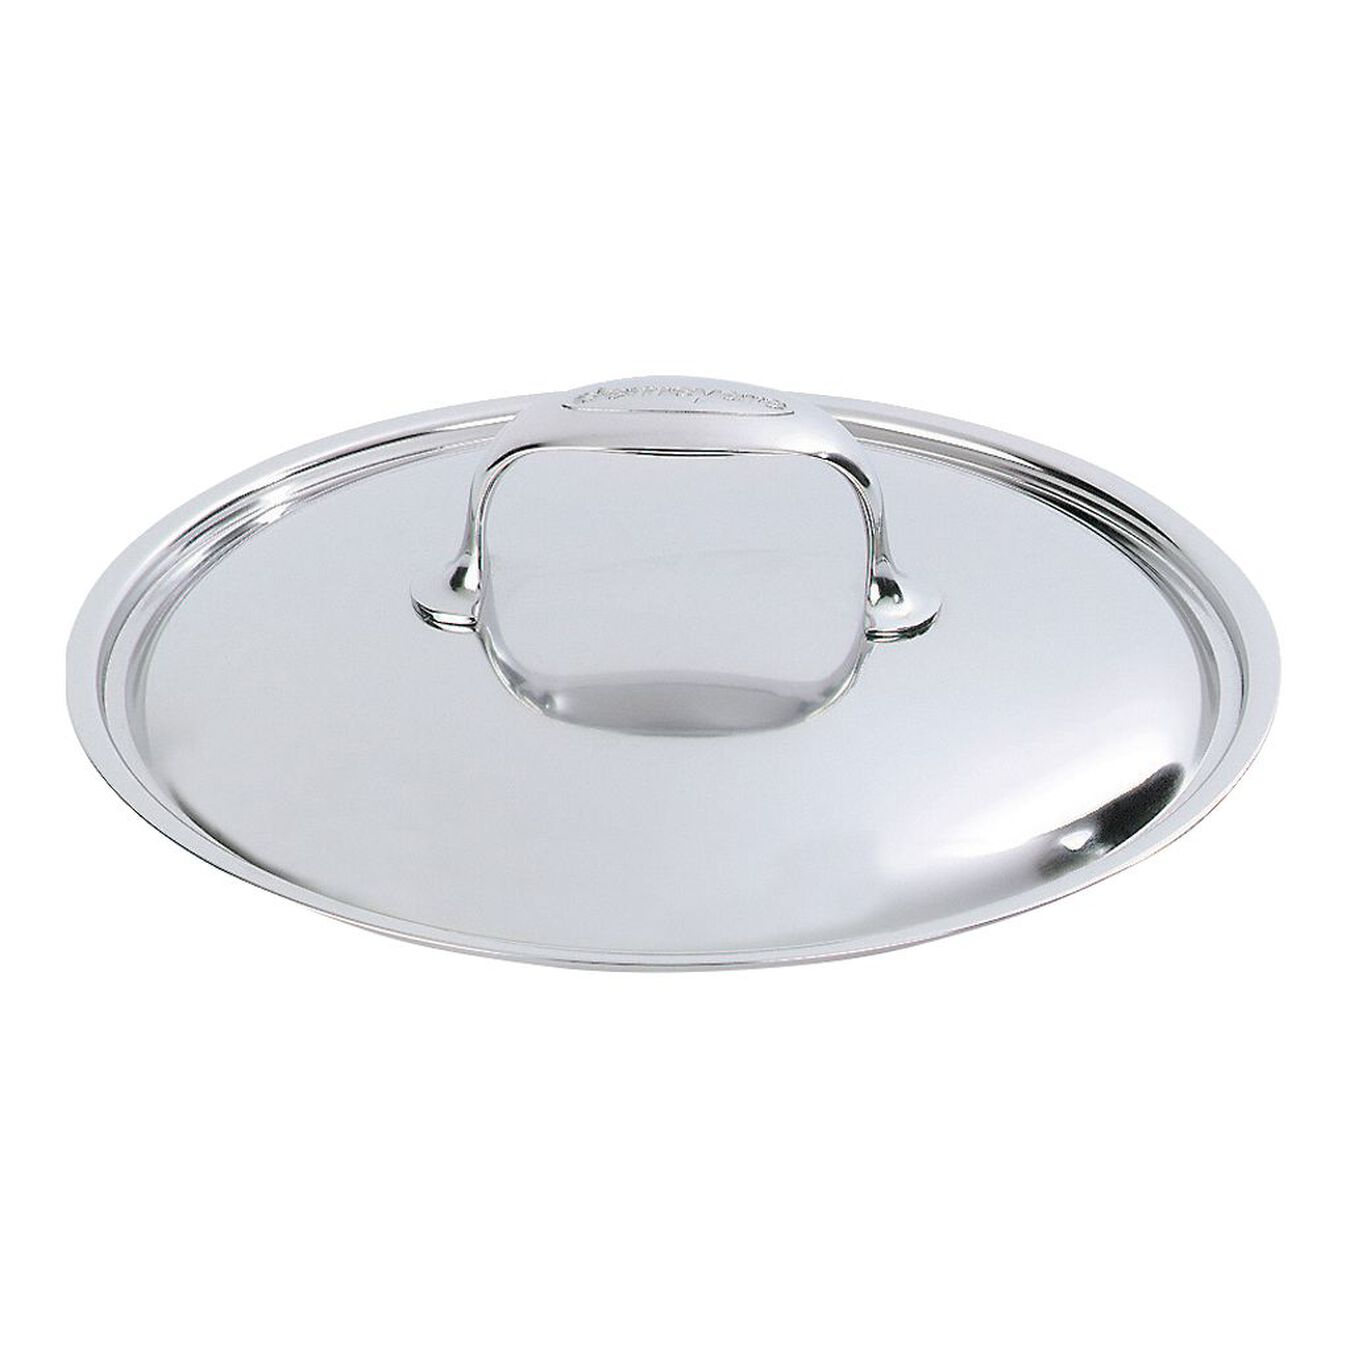 Couvercle 24 cm Inox 18/10,,large 1